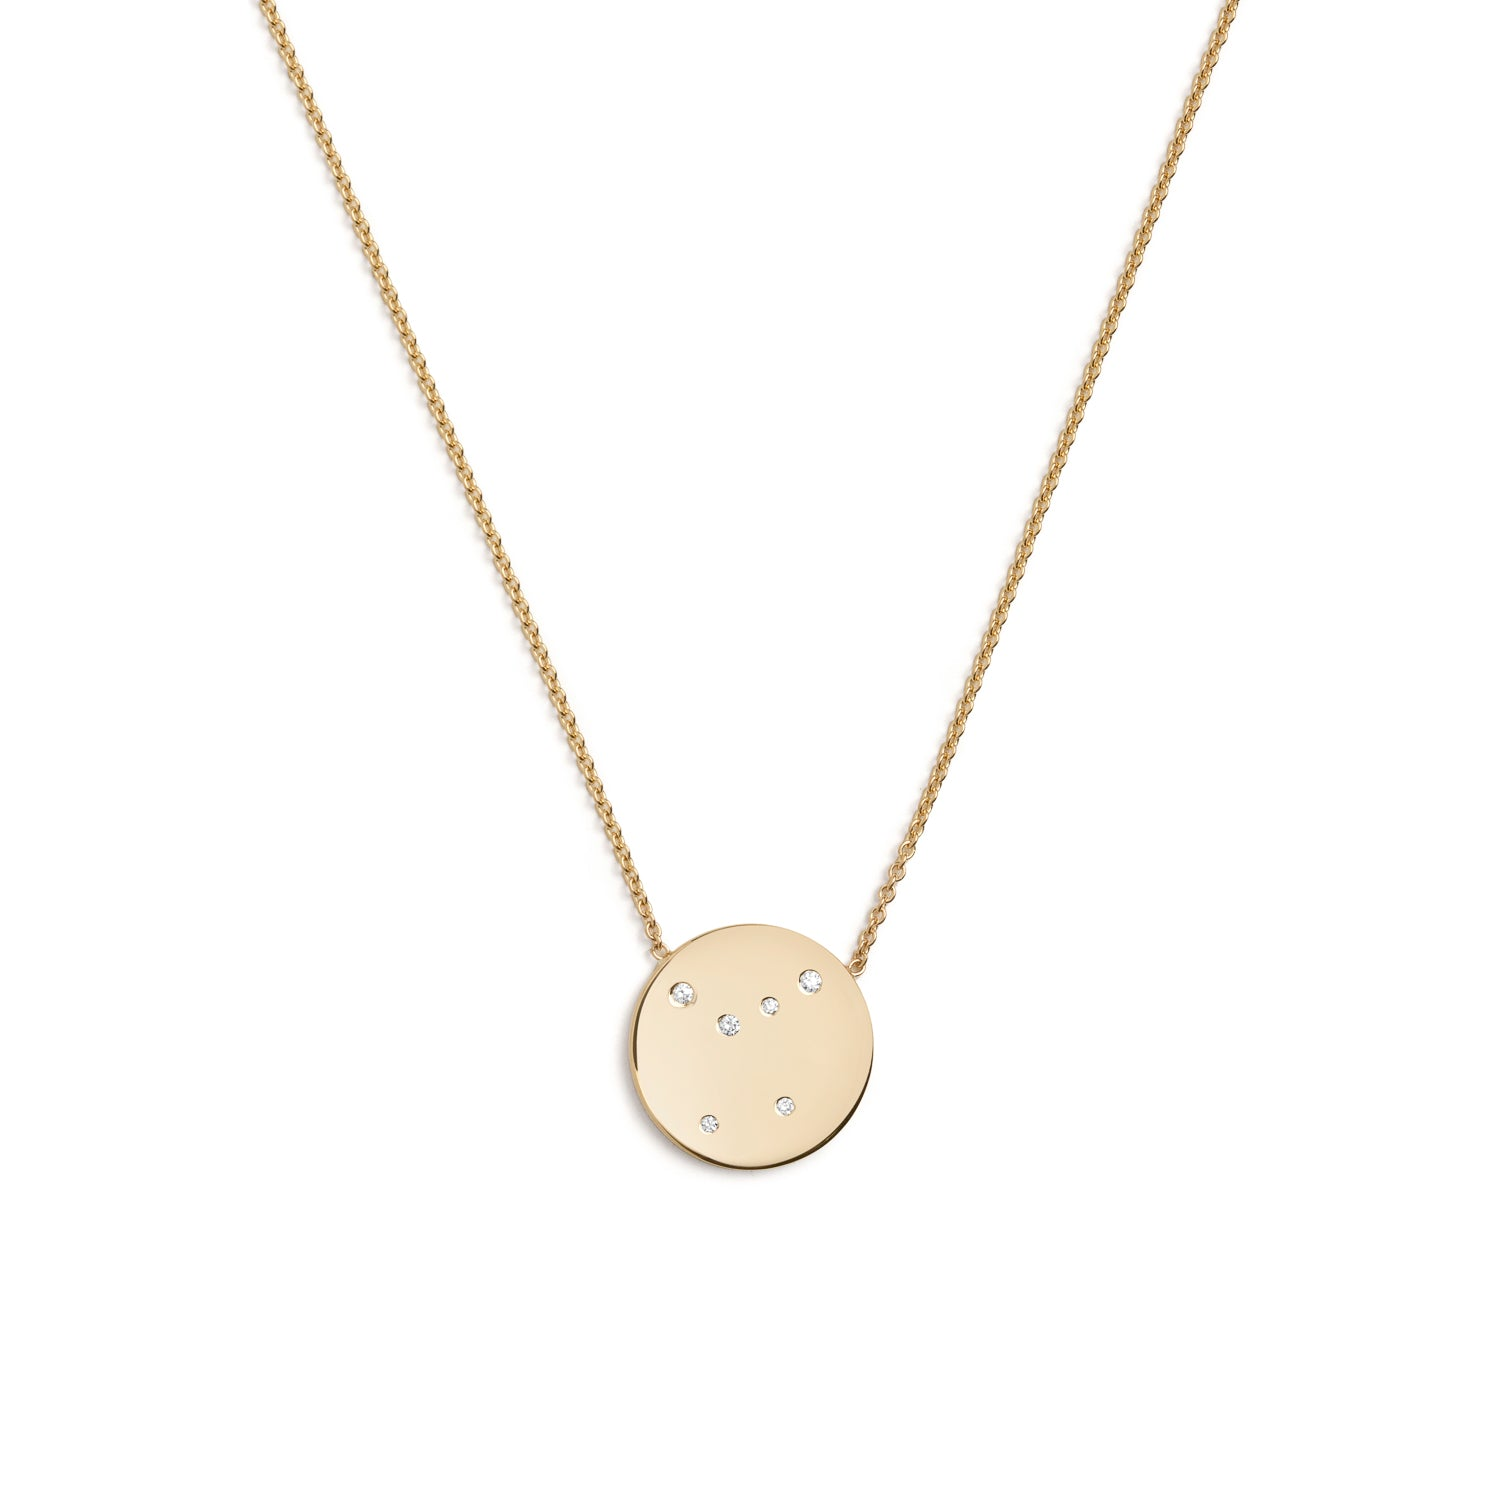 Cancer Star Sign Necklace in Gold